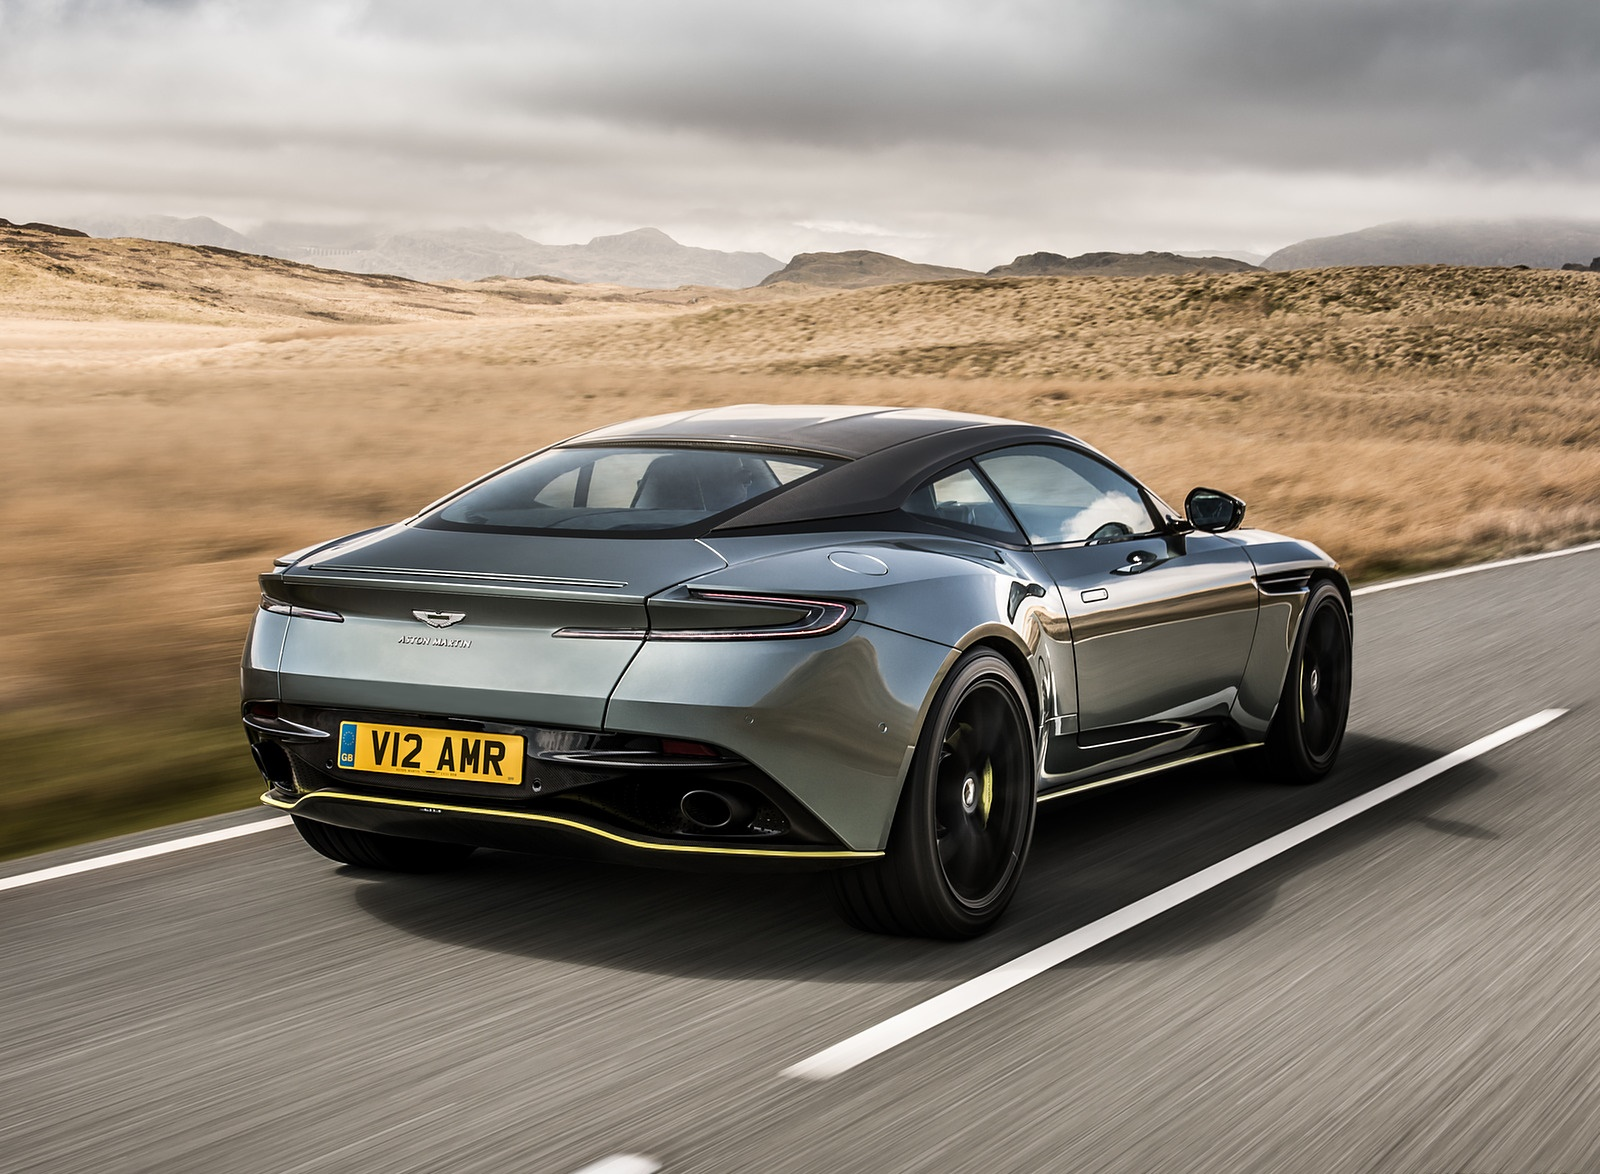 2019 Aston Martin DB11 AMR (Signature Edition) Rear Three-Quarter Wallpapers (11)